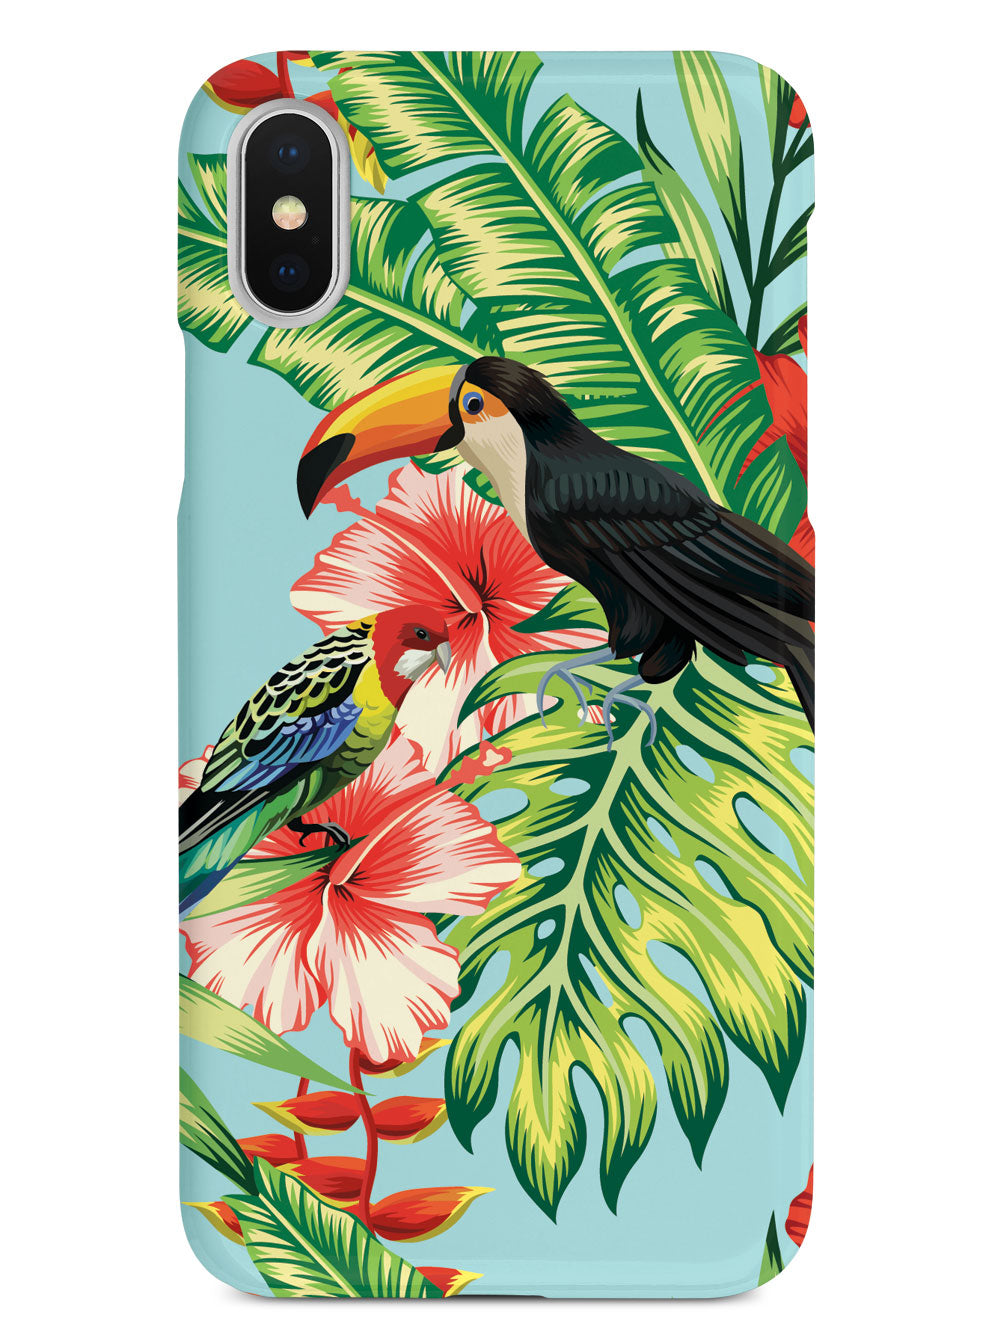 Hibiscus - Parrot and Tucan - Black Case